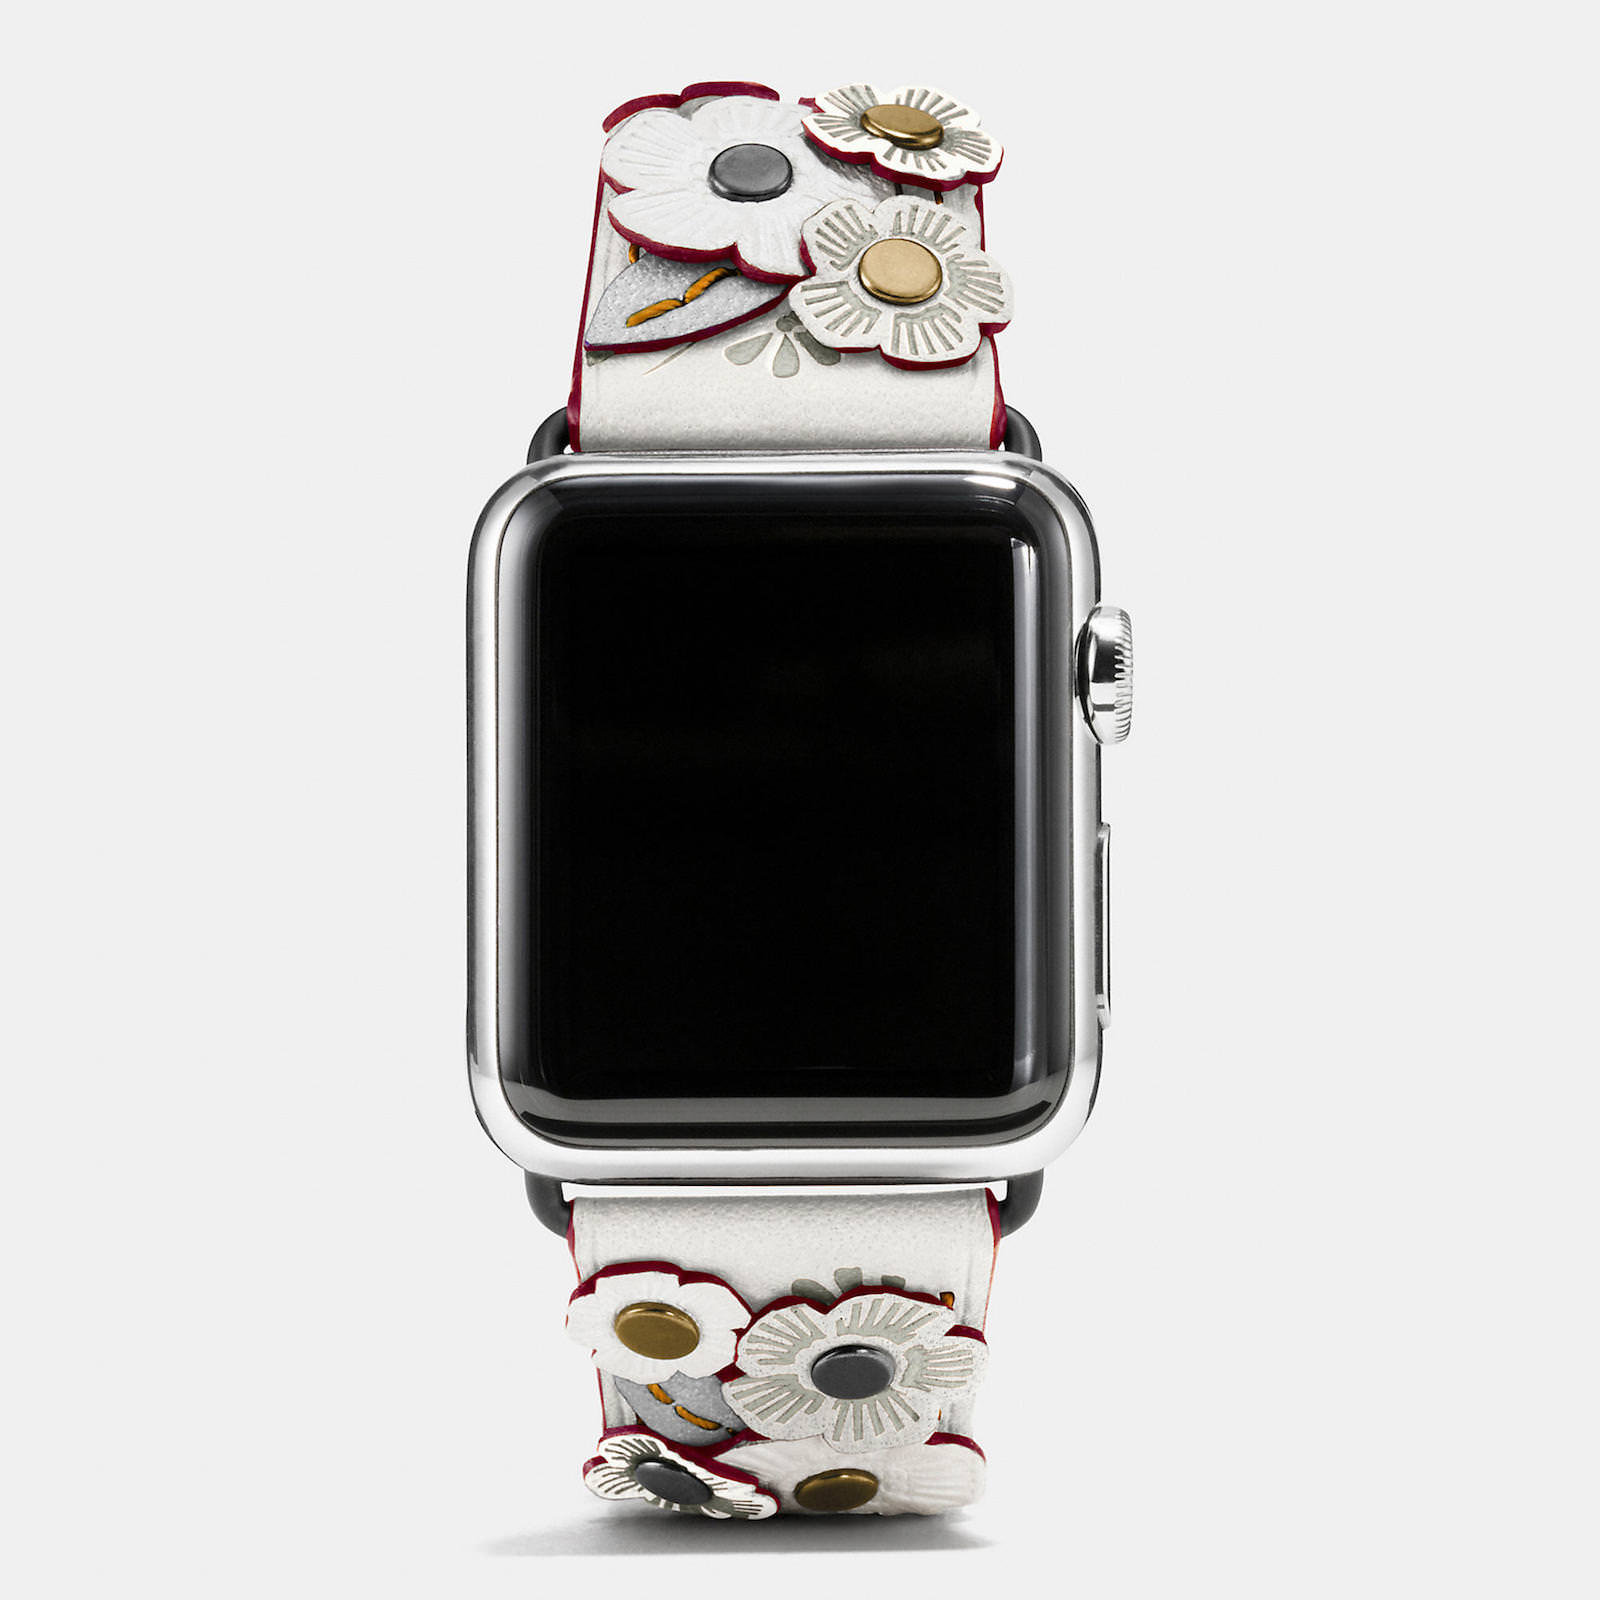 Apple-Watch-Coach-Band-Autumn-Season-12.jpeg